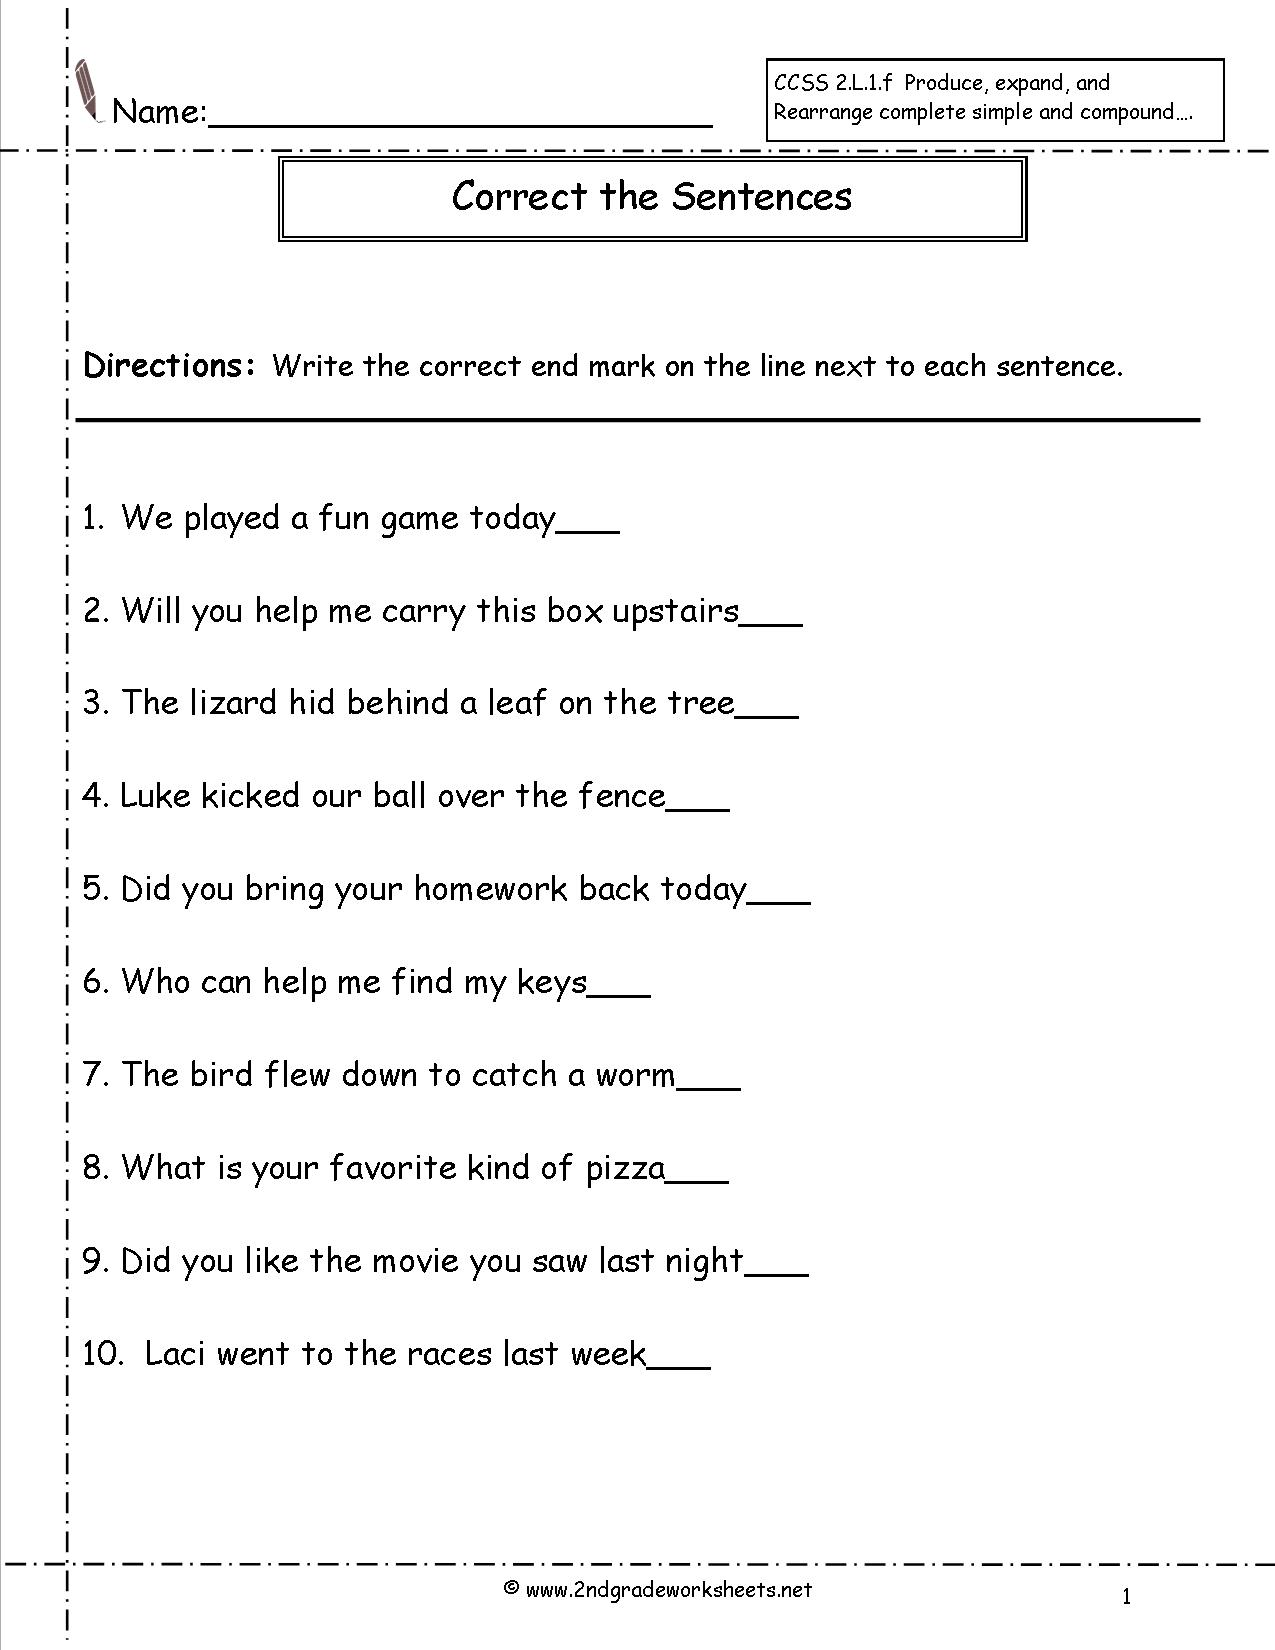 17 Best Images Of What Makes A Hero Worksheet